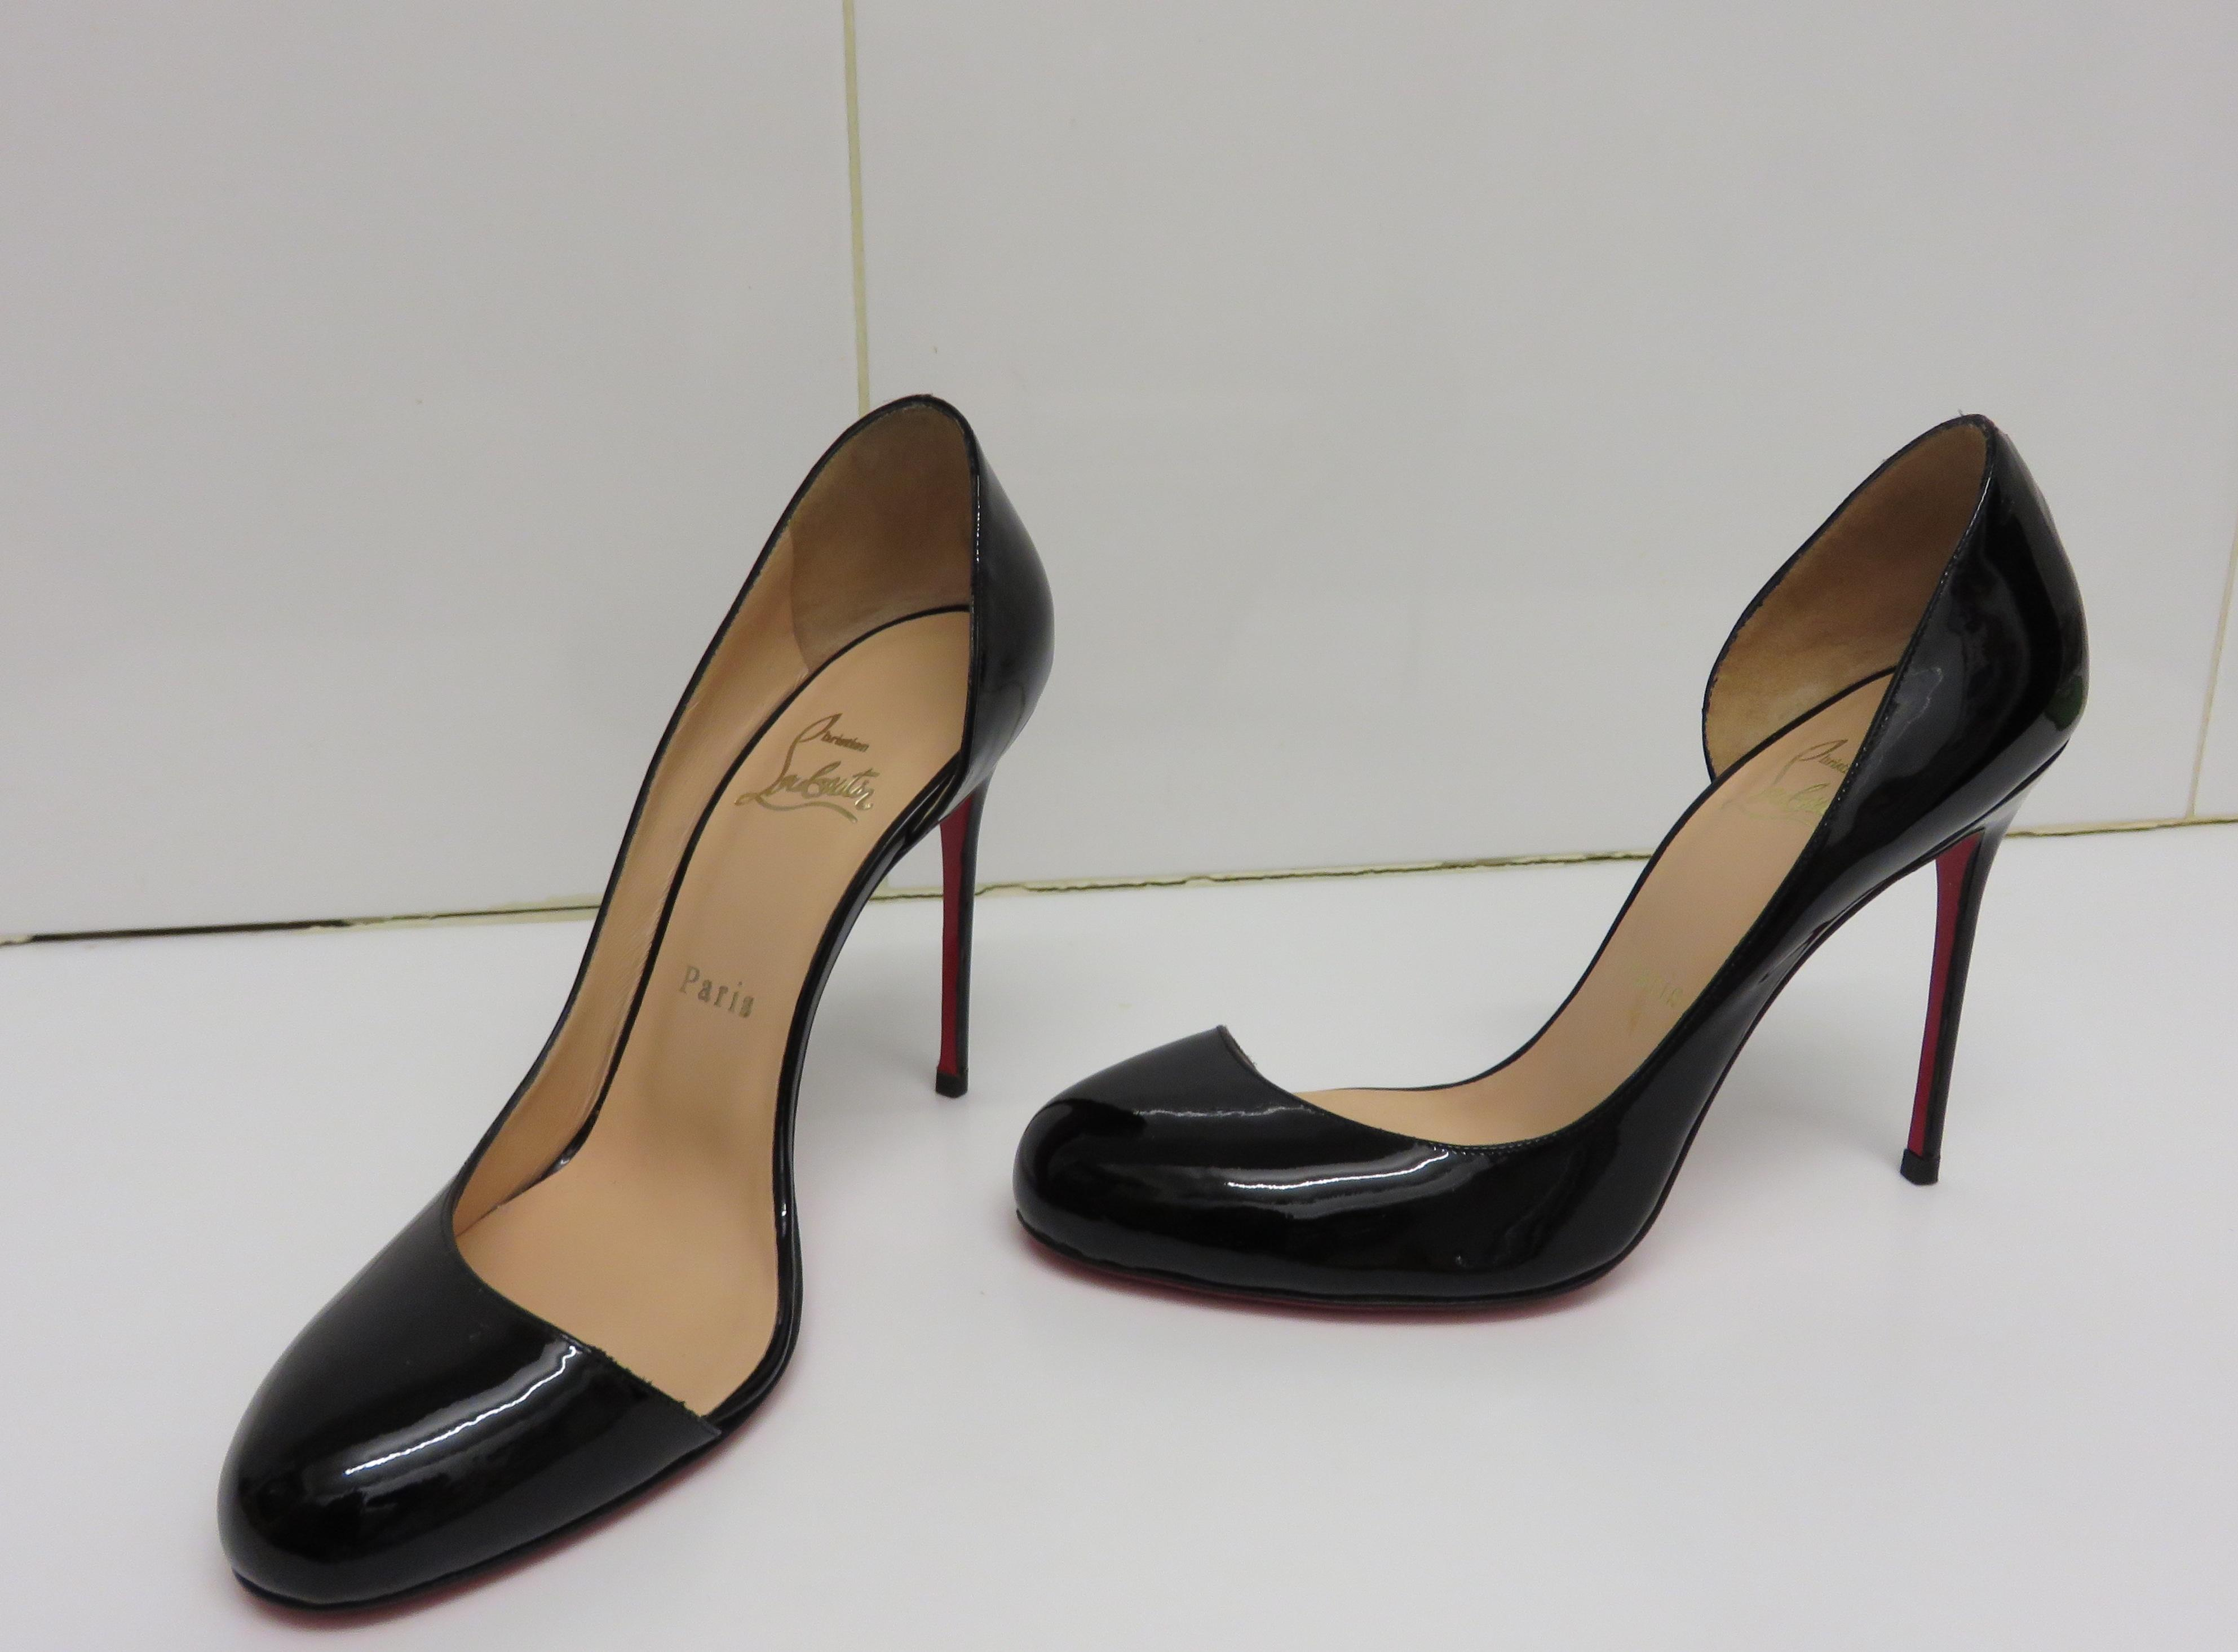 613611c86fe0 ... Christian Louboutin Black New In Box 100mm Patent Helmour Helmour  Helmour 38) Pumps Size US ...